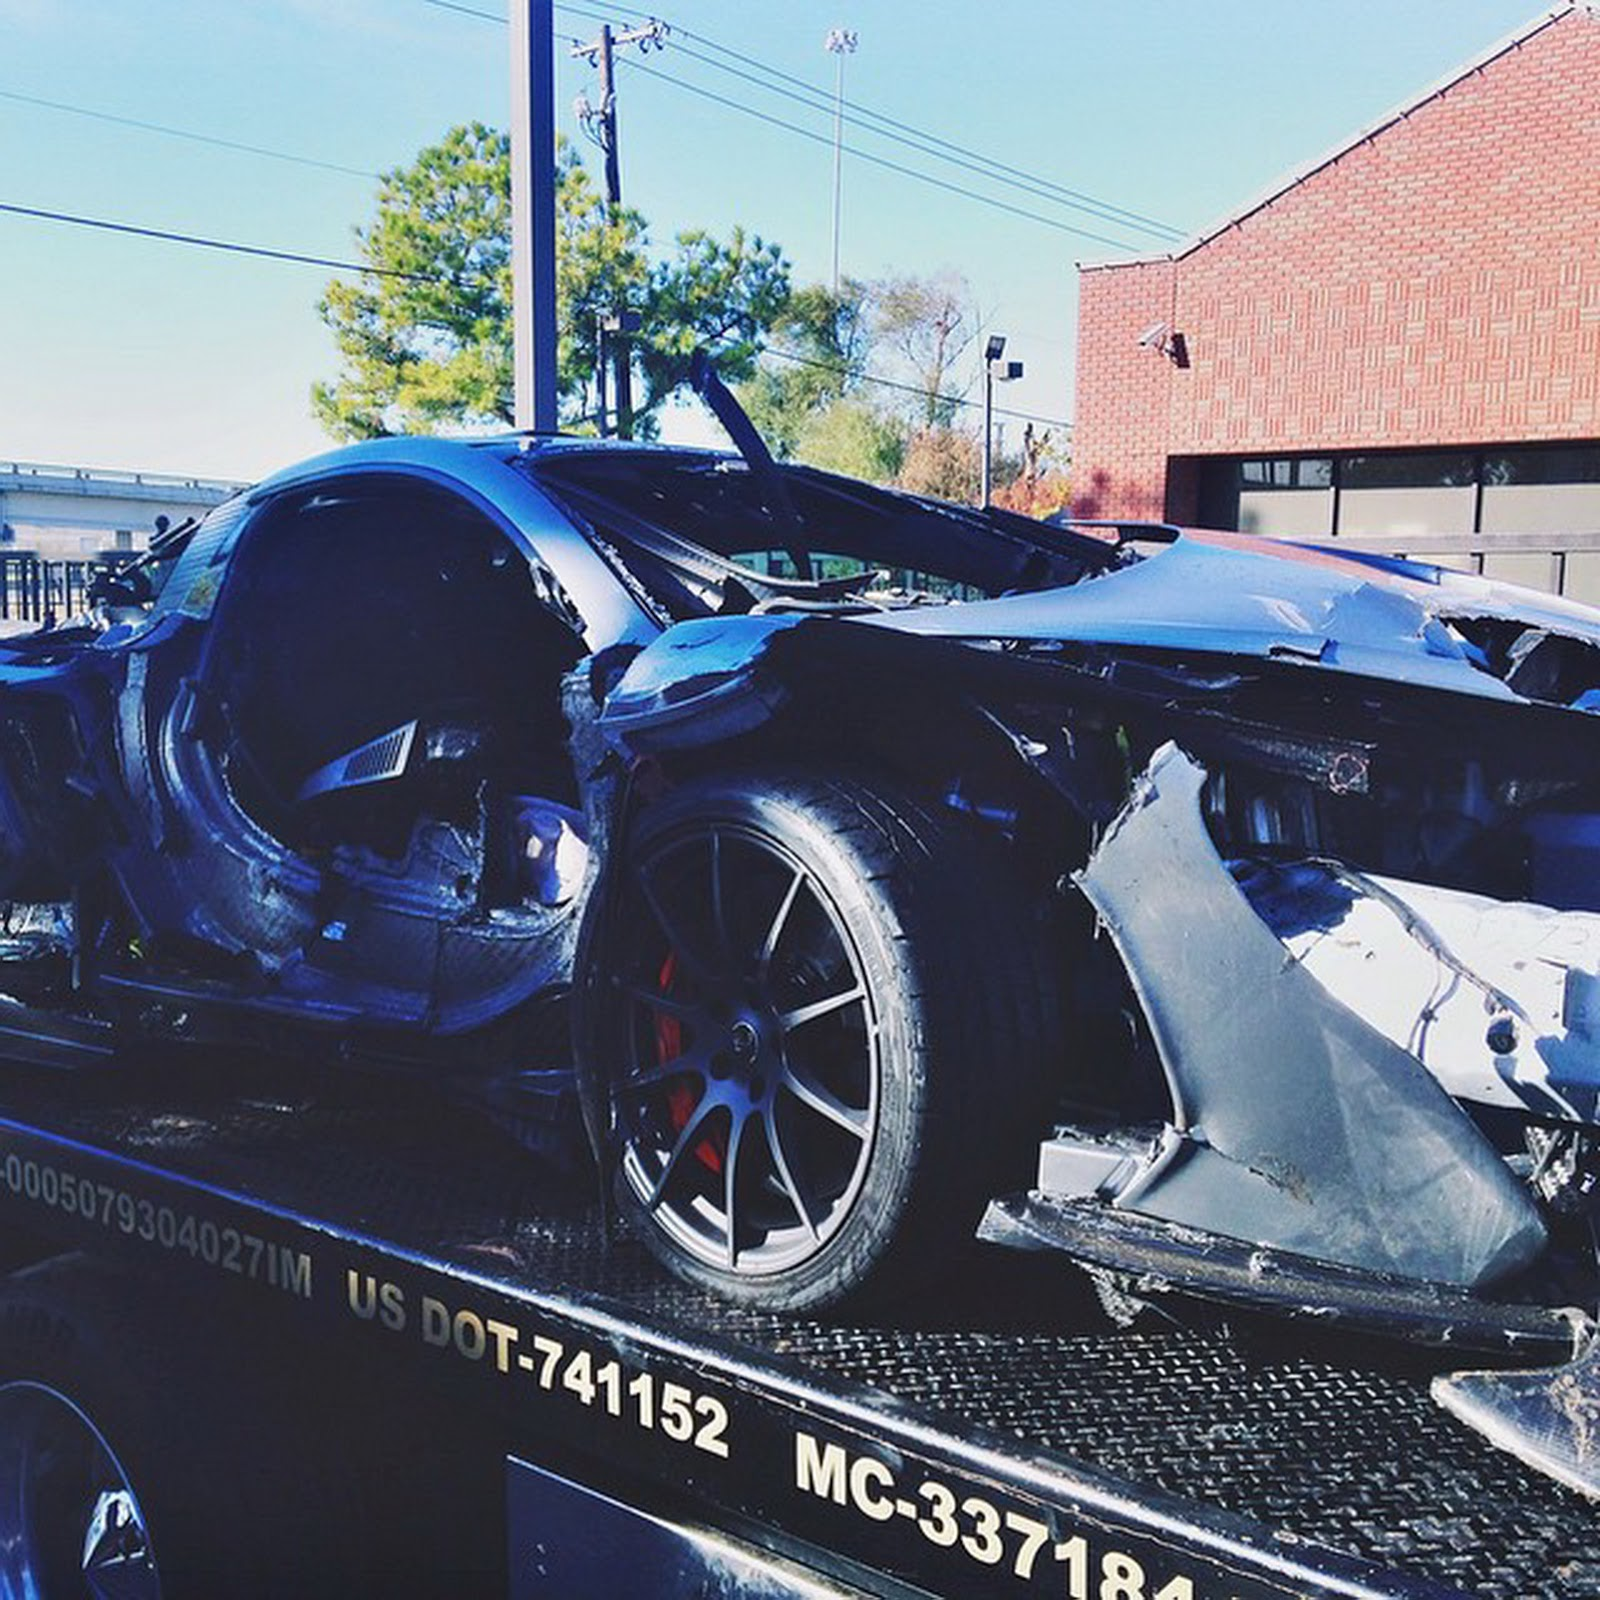 A 1 15 Million Mclaren P1 Just Crashed In Dallas Texas